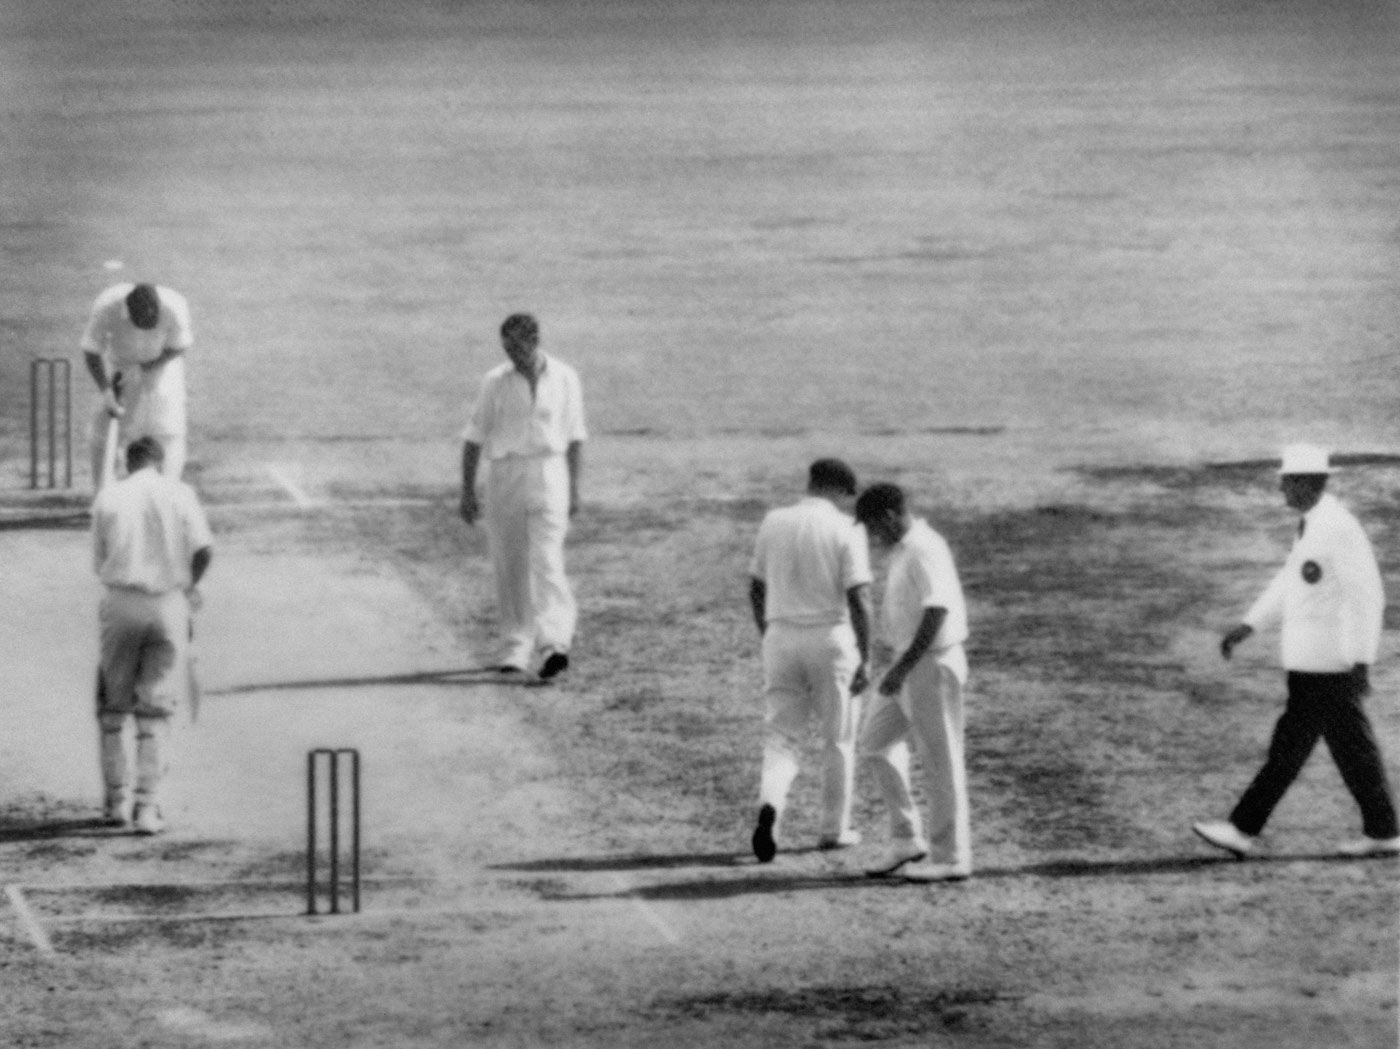 Death knell: A dejected Meckiff stares at the pitch after being no-balled at the Gabba